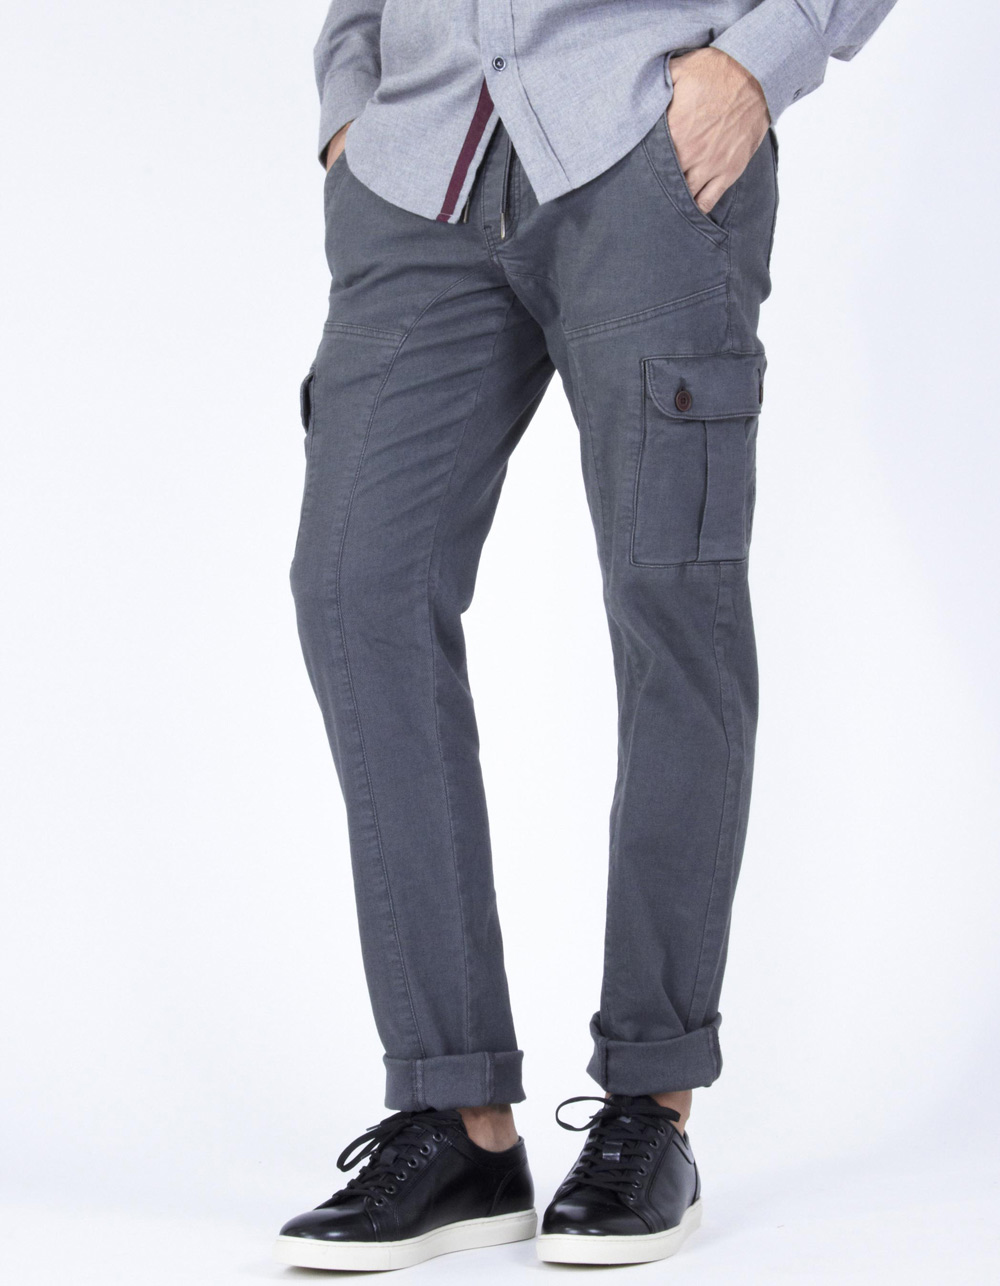 Grey cargo trousers with micro-pattern